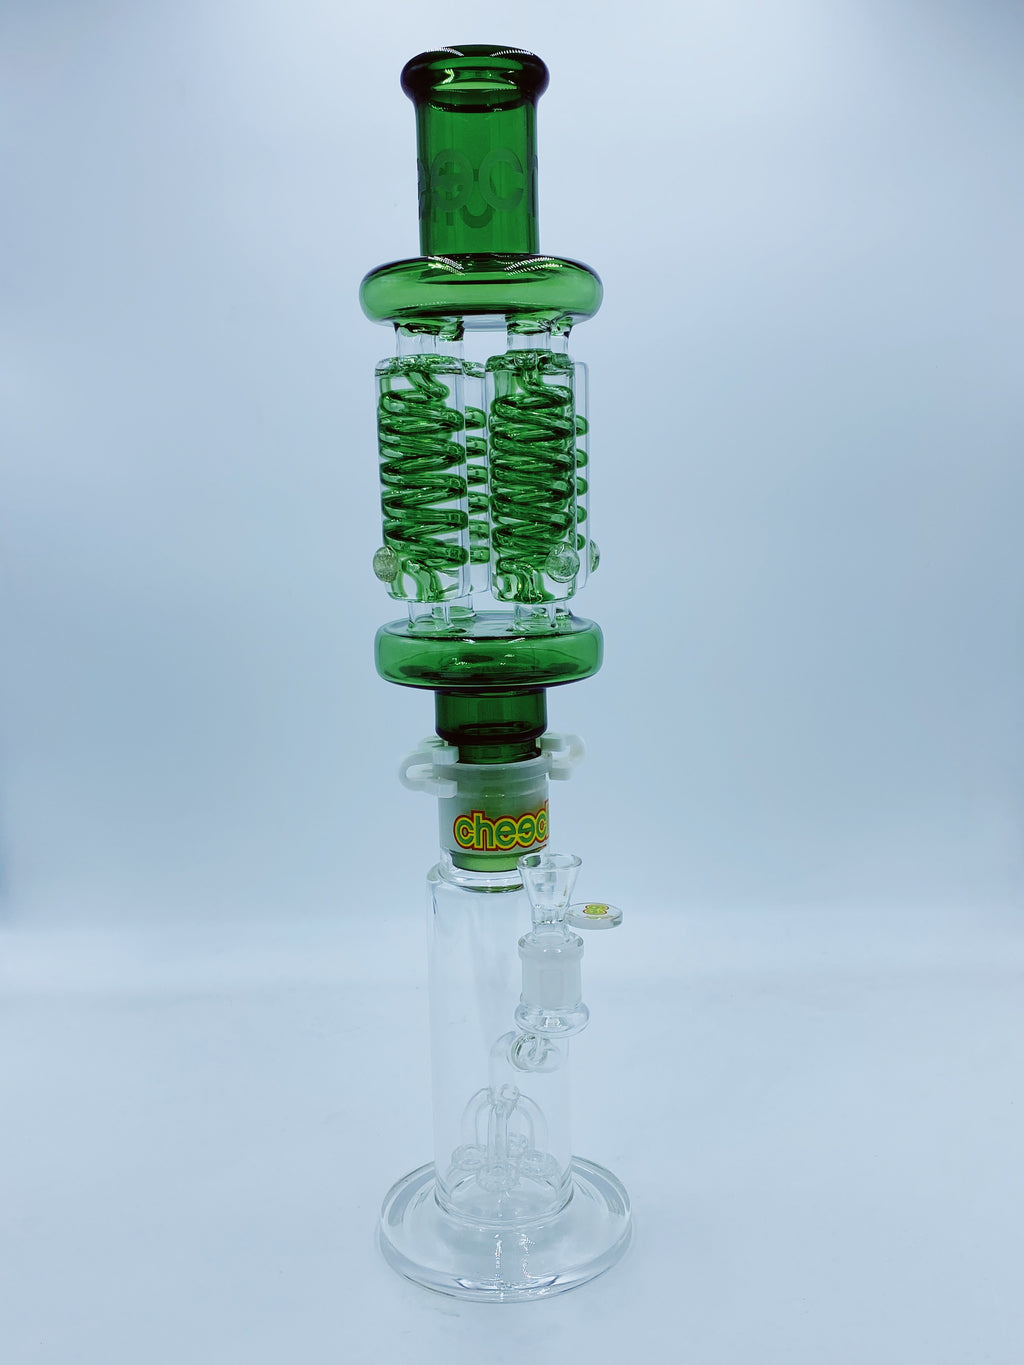 CHEECH GLASS QUAD TO QUAD BUILD A BONG SET - Smoke Country - Land of the artistic glass blown bongs